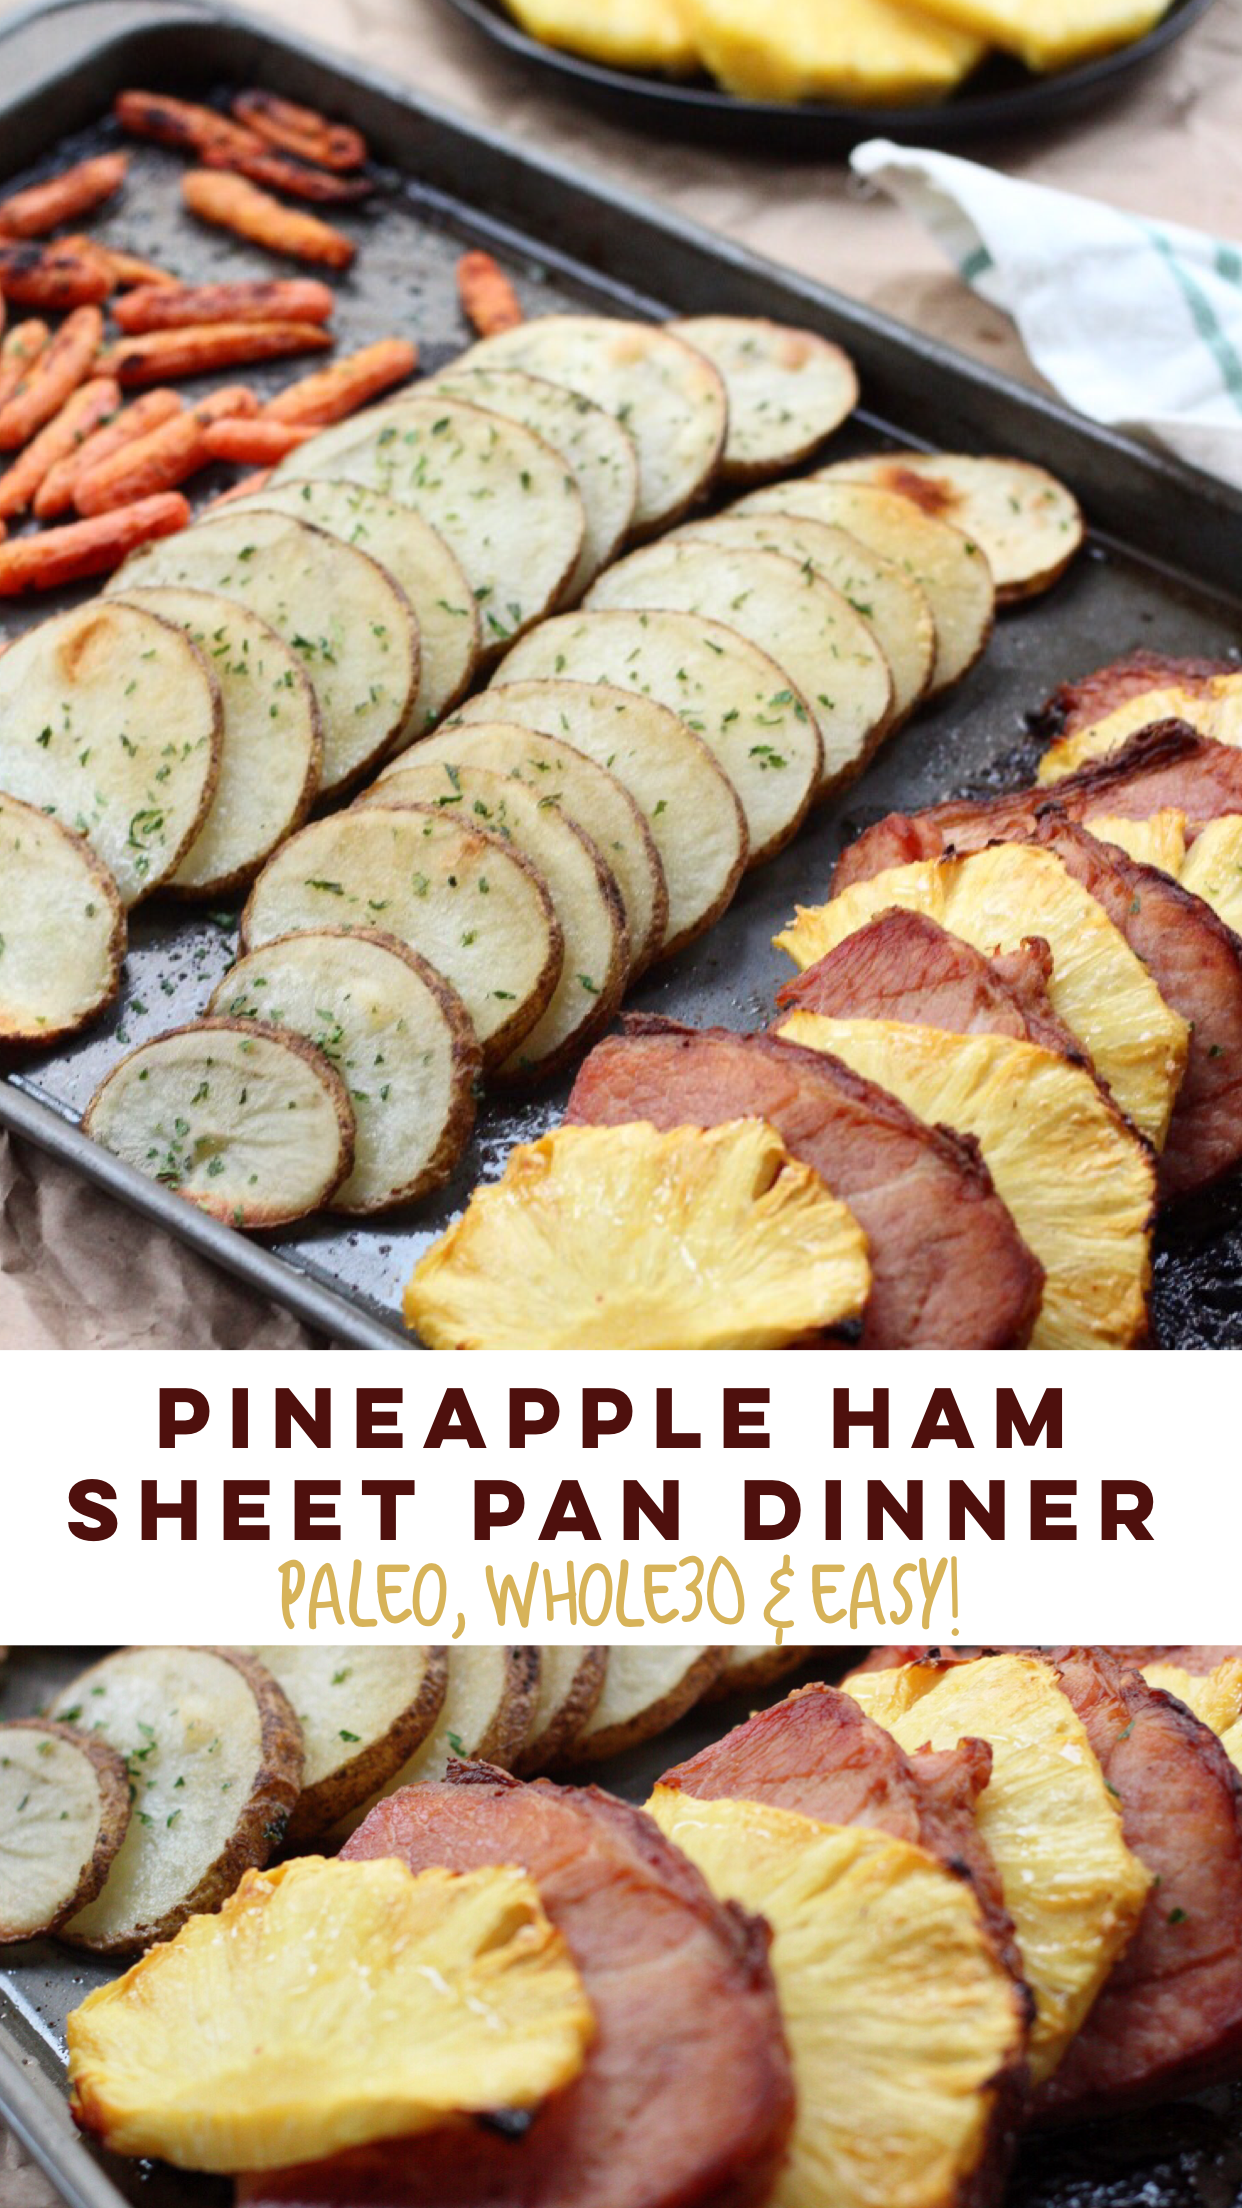 Simple and healthy pineapple ham Whole30 sheet pan dinner! This easy Paleo sheet pan meal is family friendly, and Whole30 when made sugar free ham. It's a great holiday leftover meal or an easy meal prep idea #sheetpan #hamrecipes #paleosheetpan #whole30sheetpan via @paleobailey